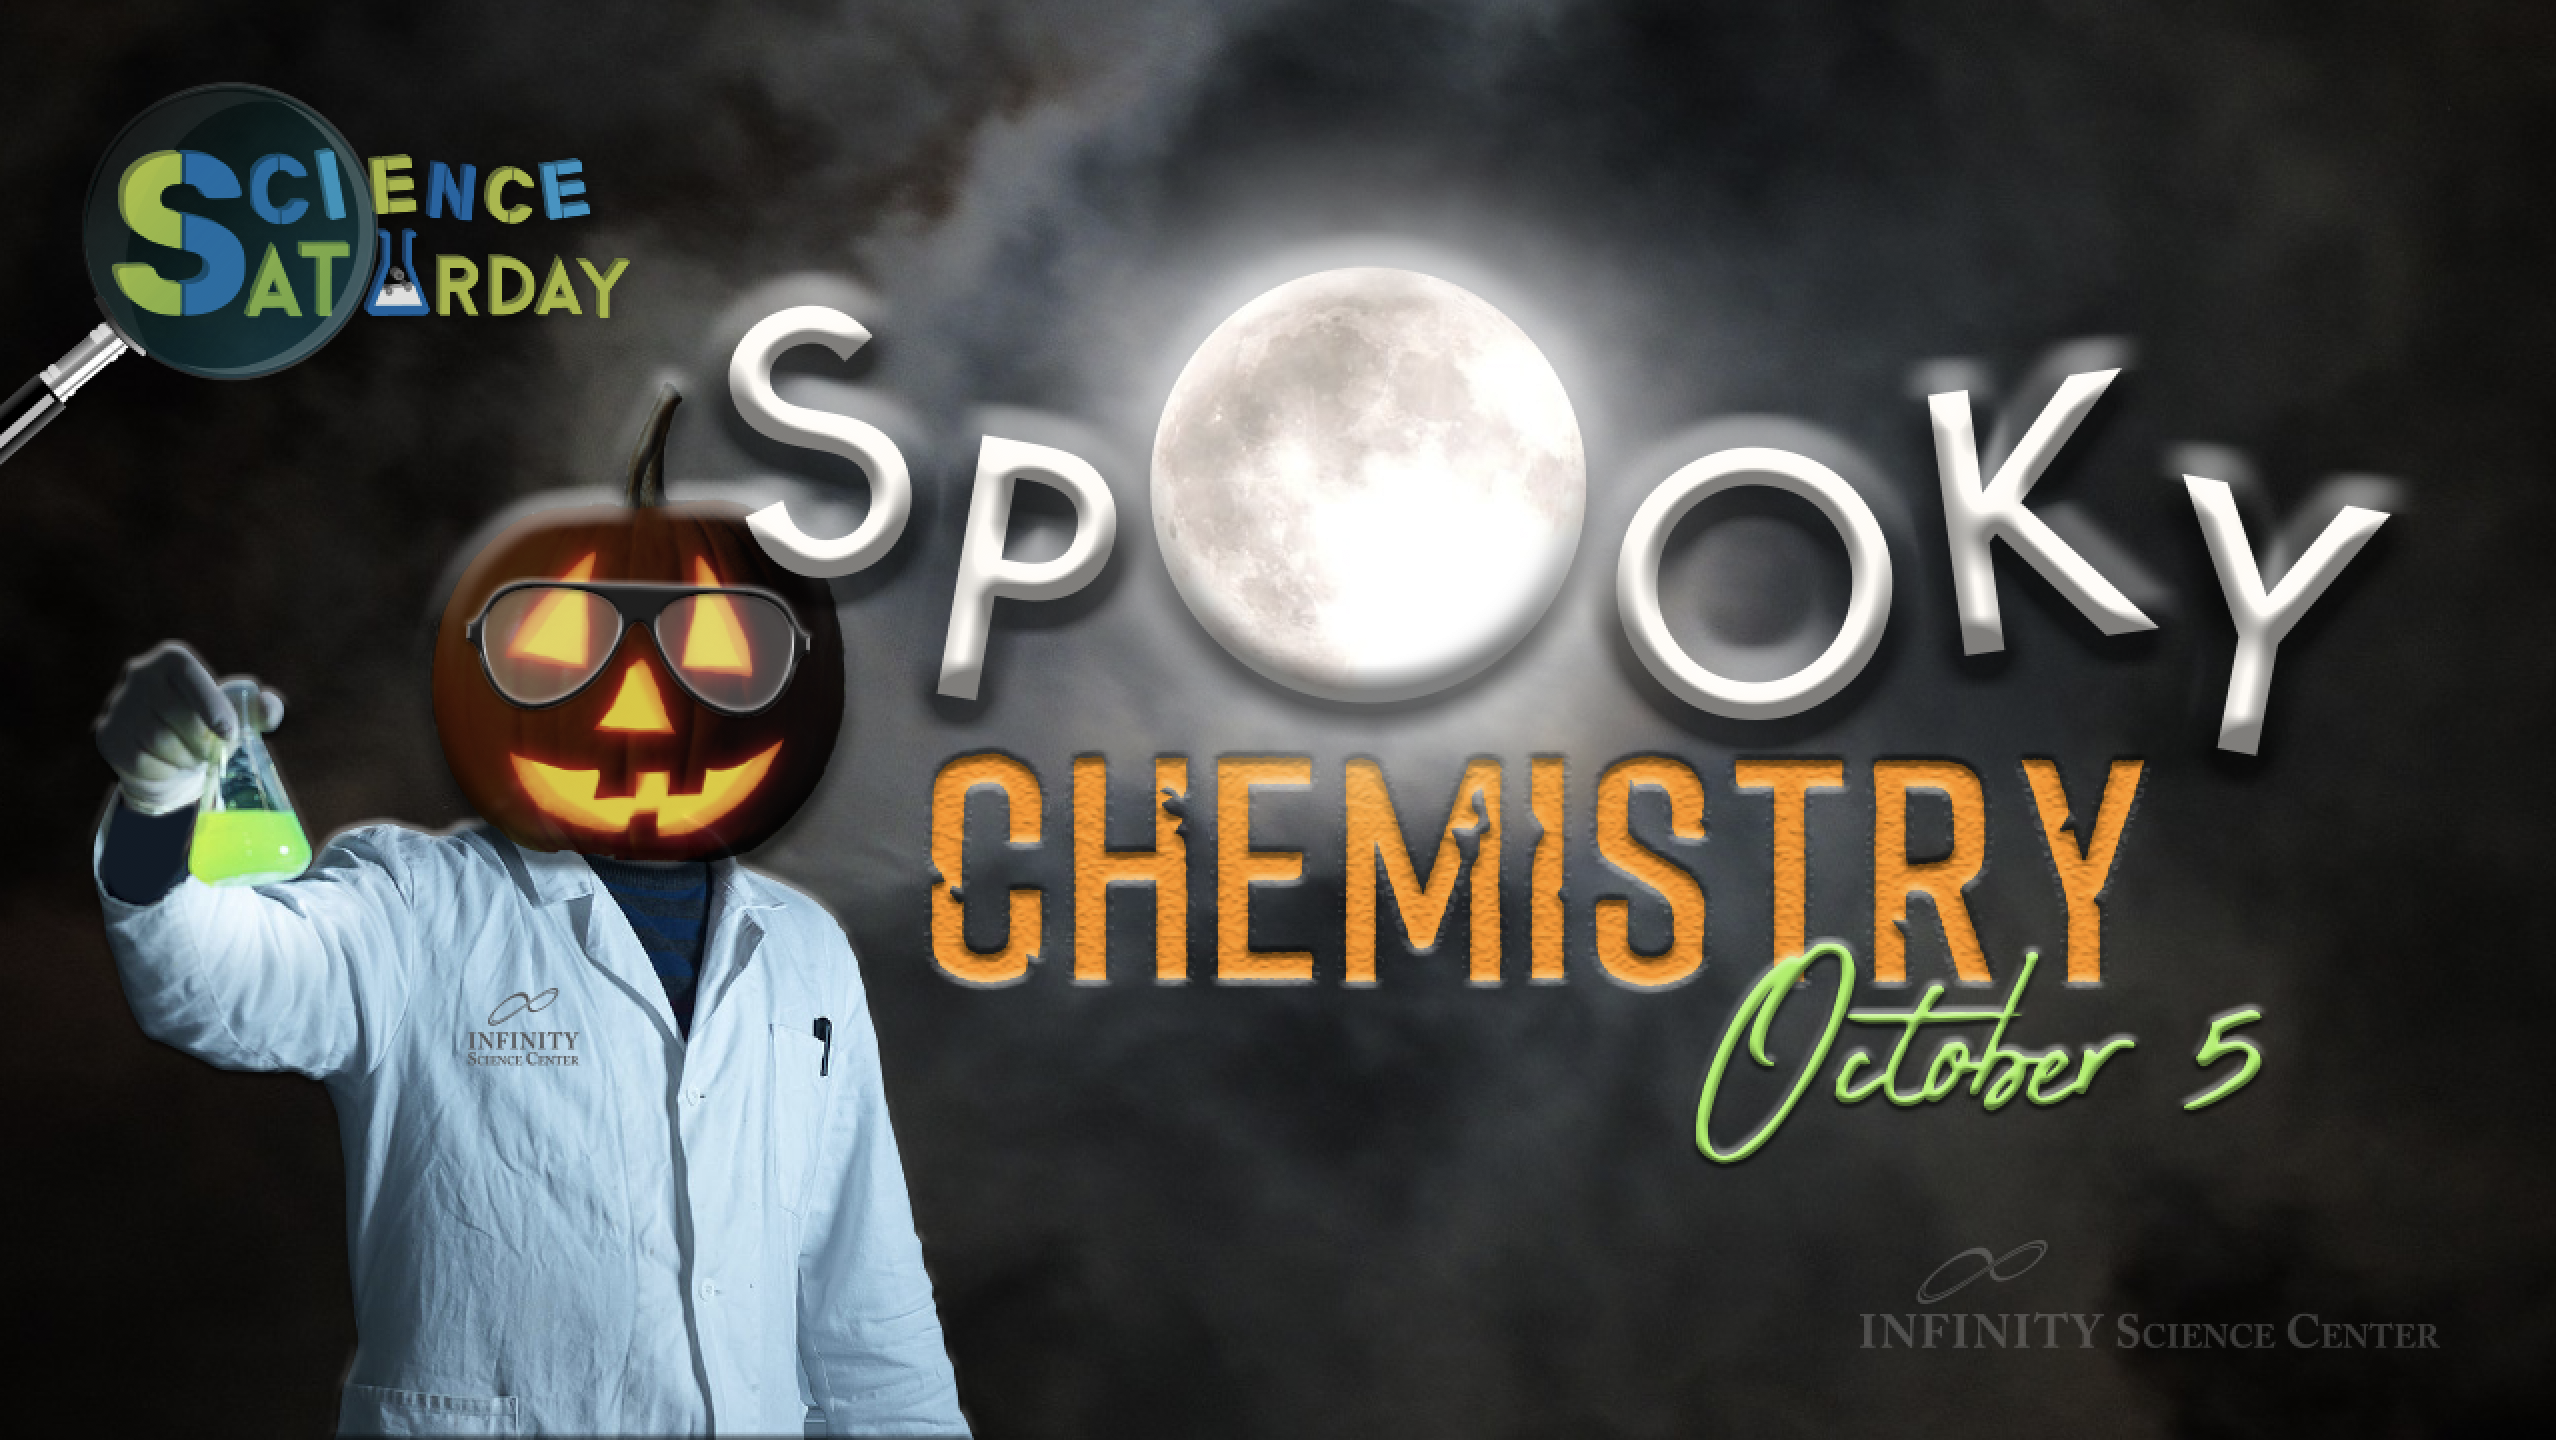 Science Saturday: Spooky Chemistry